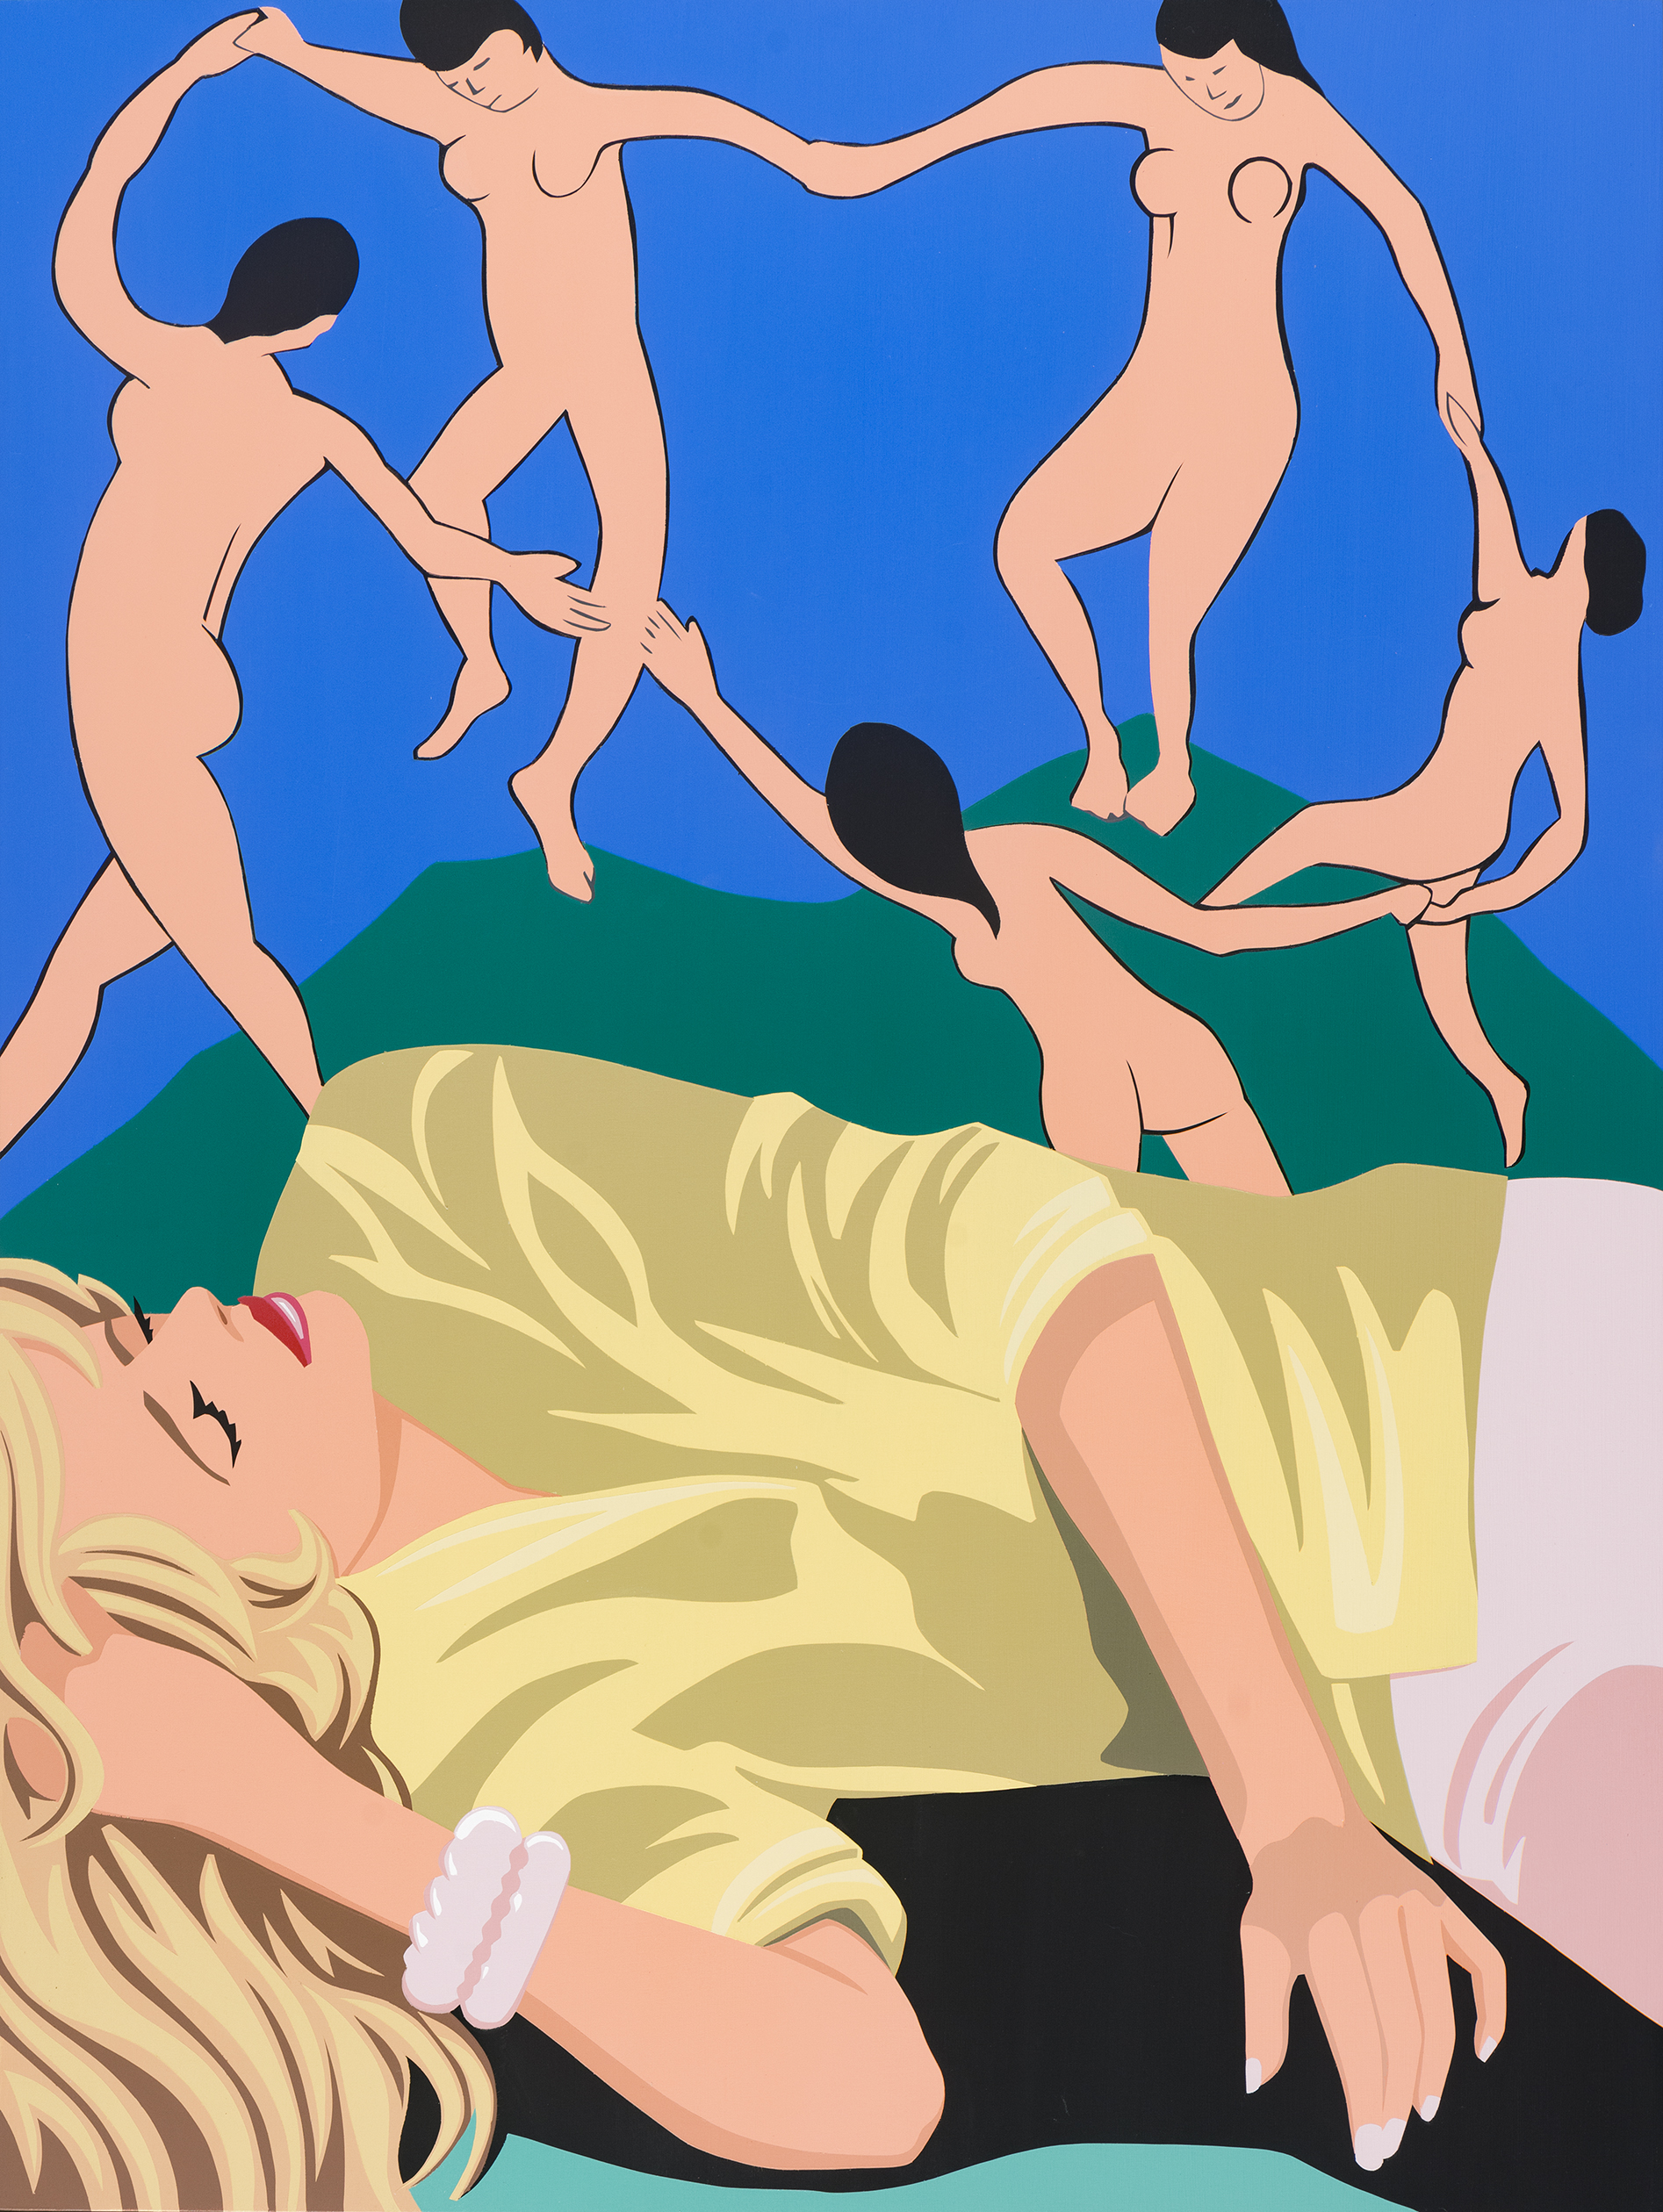 Wolanin - Women dreaming of Matisse dancers